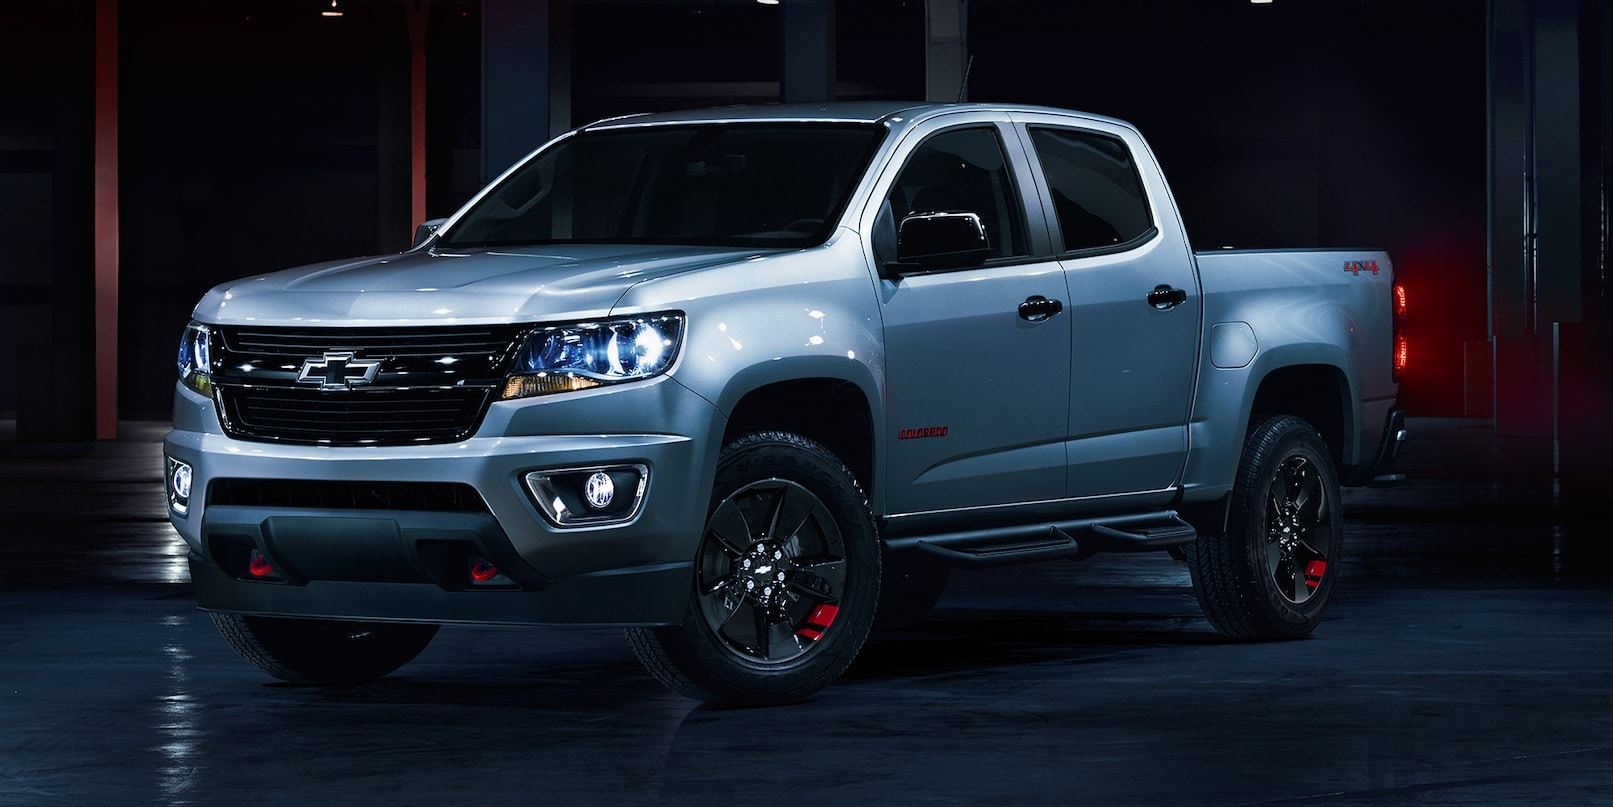 Chevy Redline Special Editions At Muzi Chevy Serving